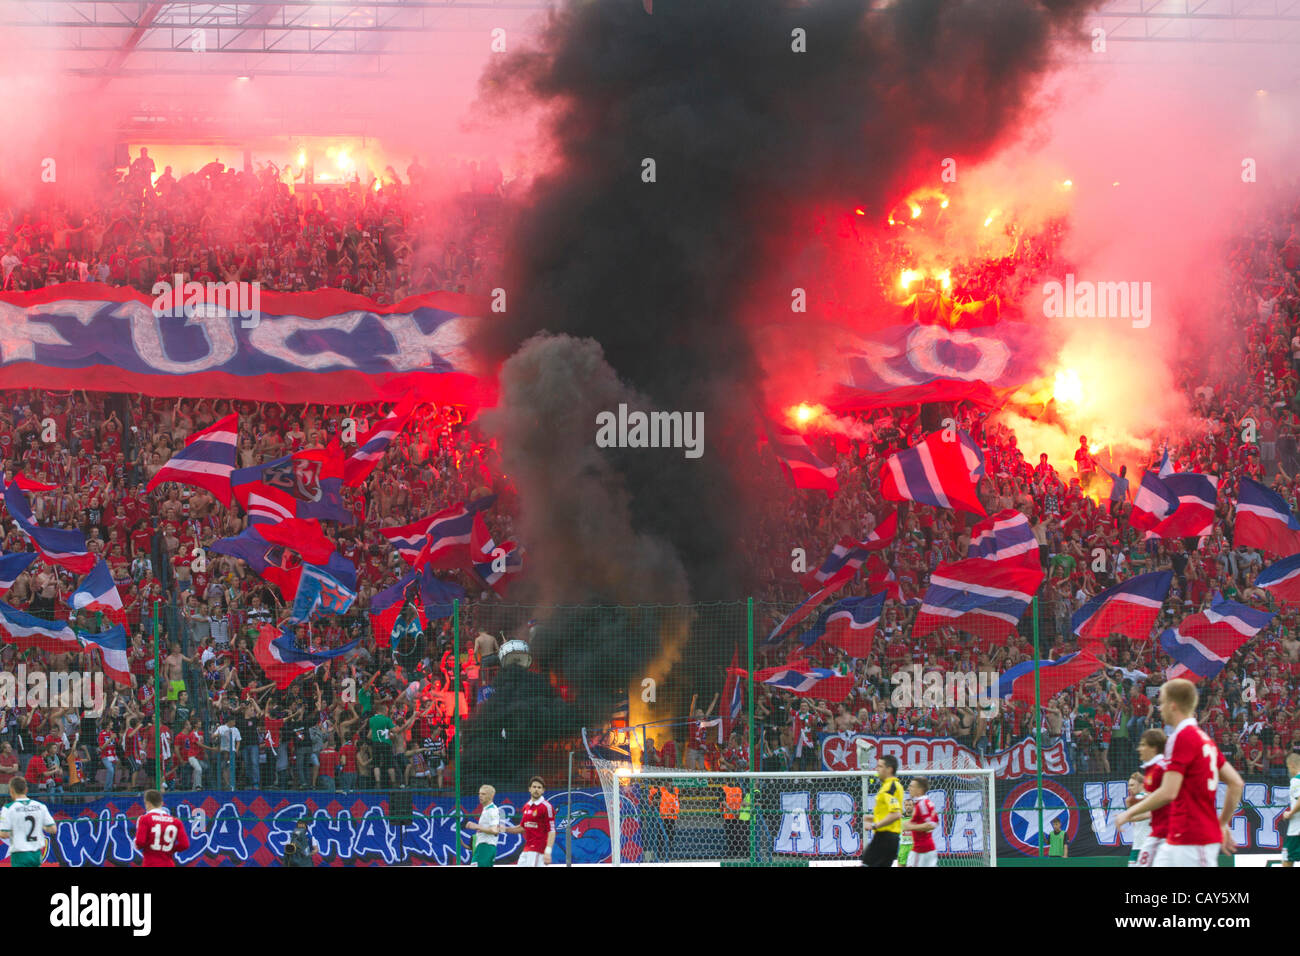 06.05.2012. Krakow, Poland. T-Mobile Ekstraklasa League ...